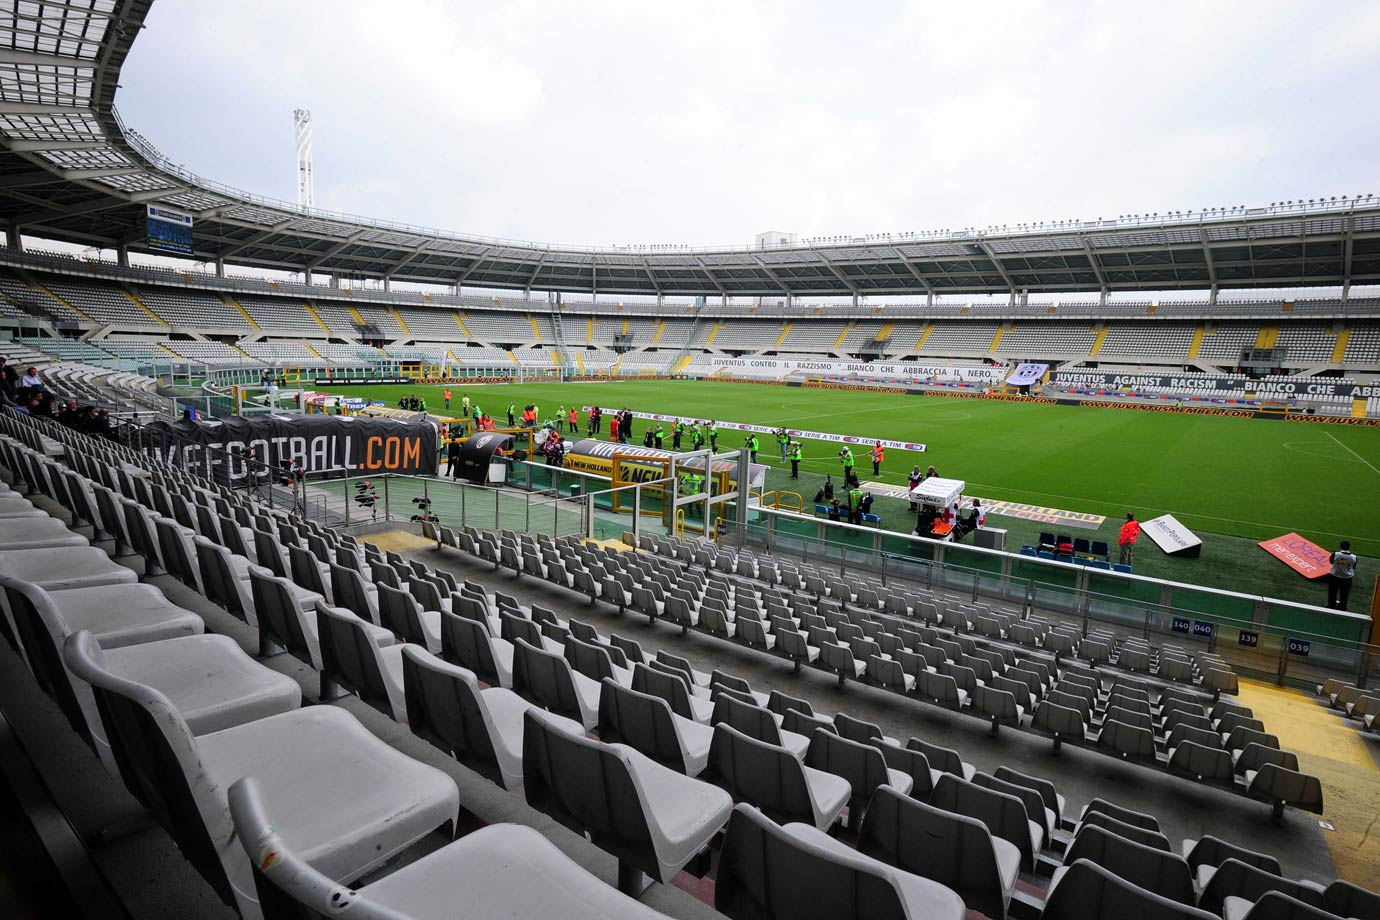 Juventus were ordered to play a home game behind closed doors after their fans had racially abused Inter Milan striker Mario Balotelli during a 1-1 Serie A draw in April 2009. Juventus and Atalanta played to a 2-2 tie.